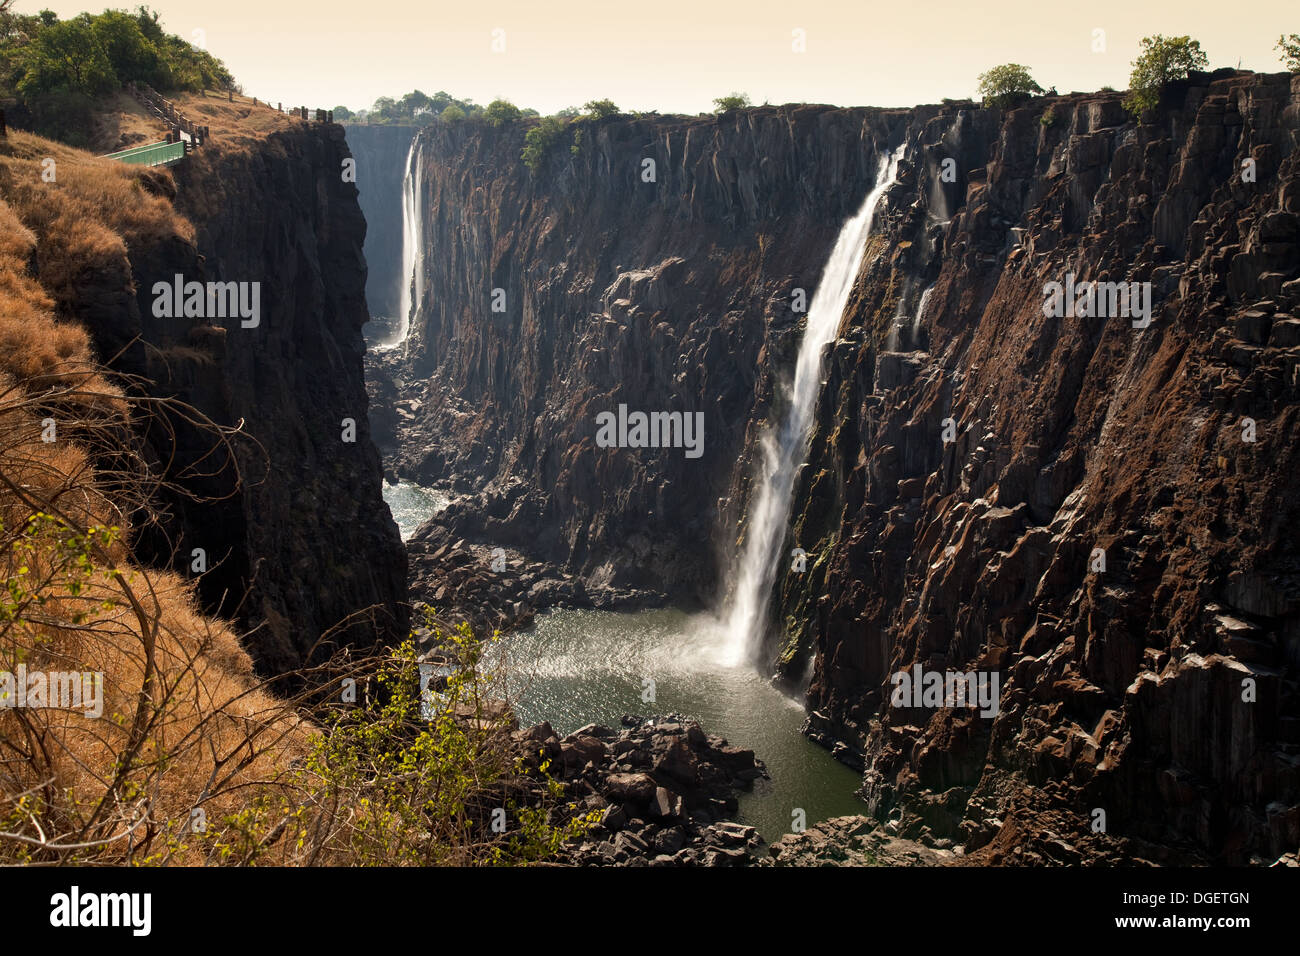 The Victoria Falls in the Dry Season (October) on the Zambia side in the evening, Zambia Africa - Stock Image